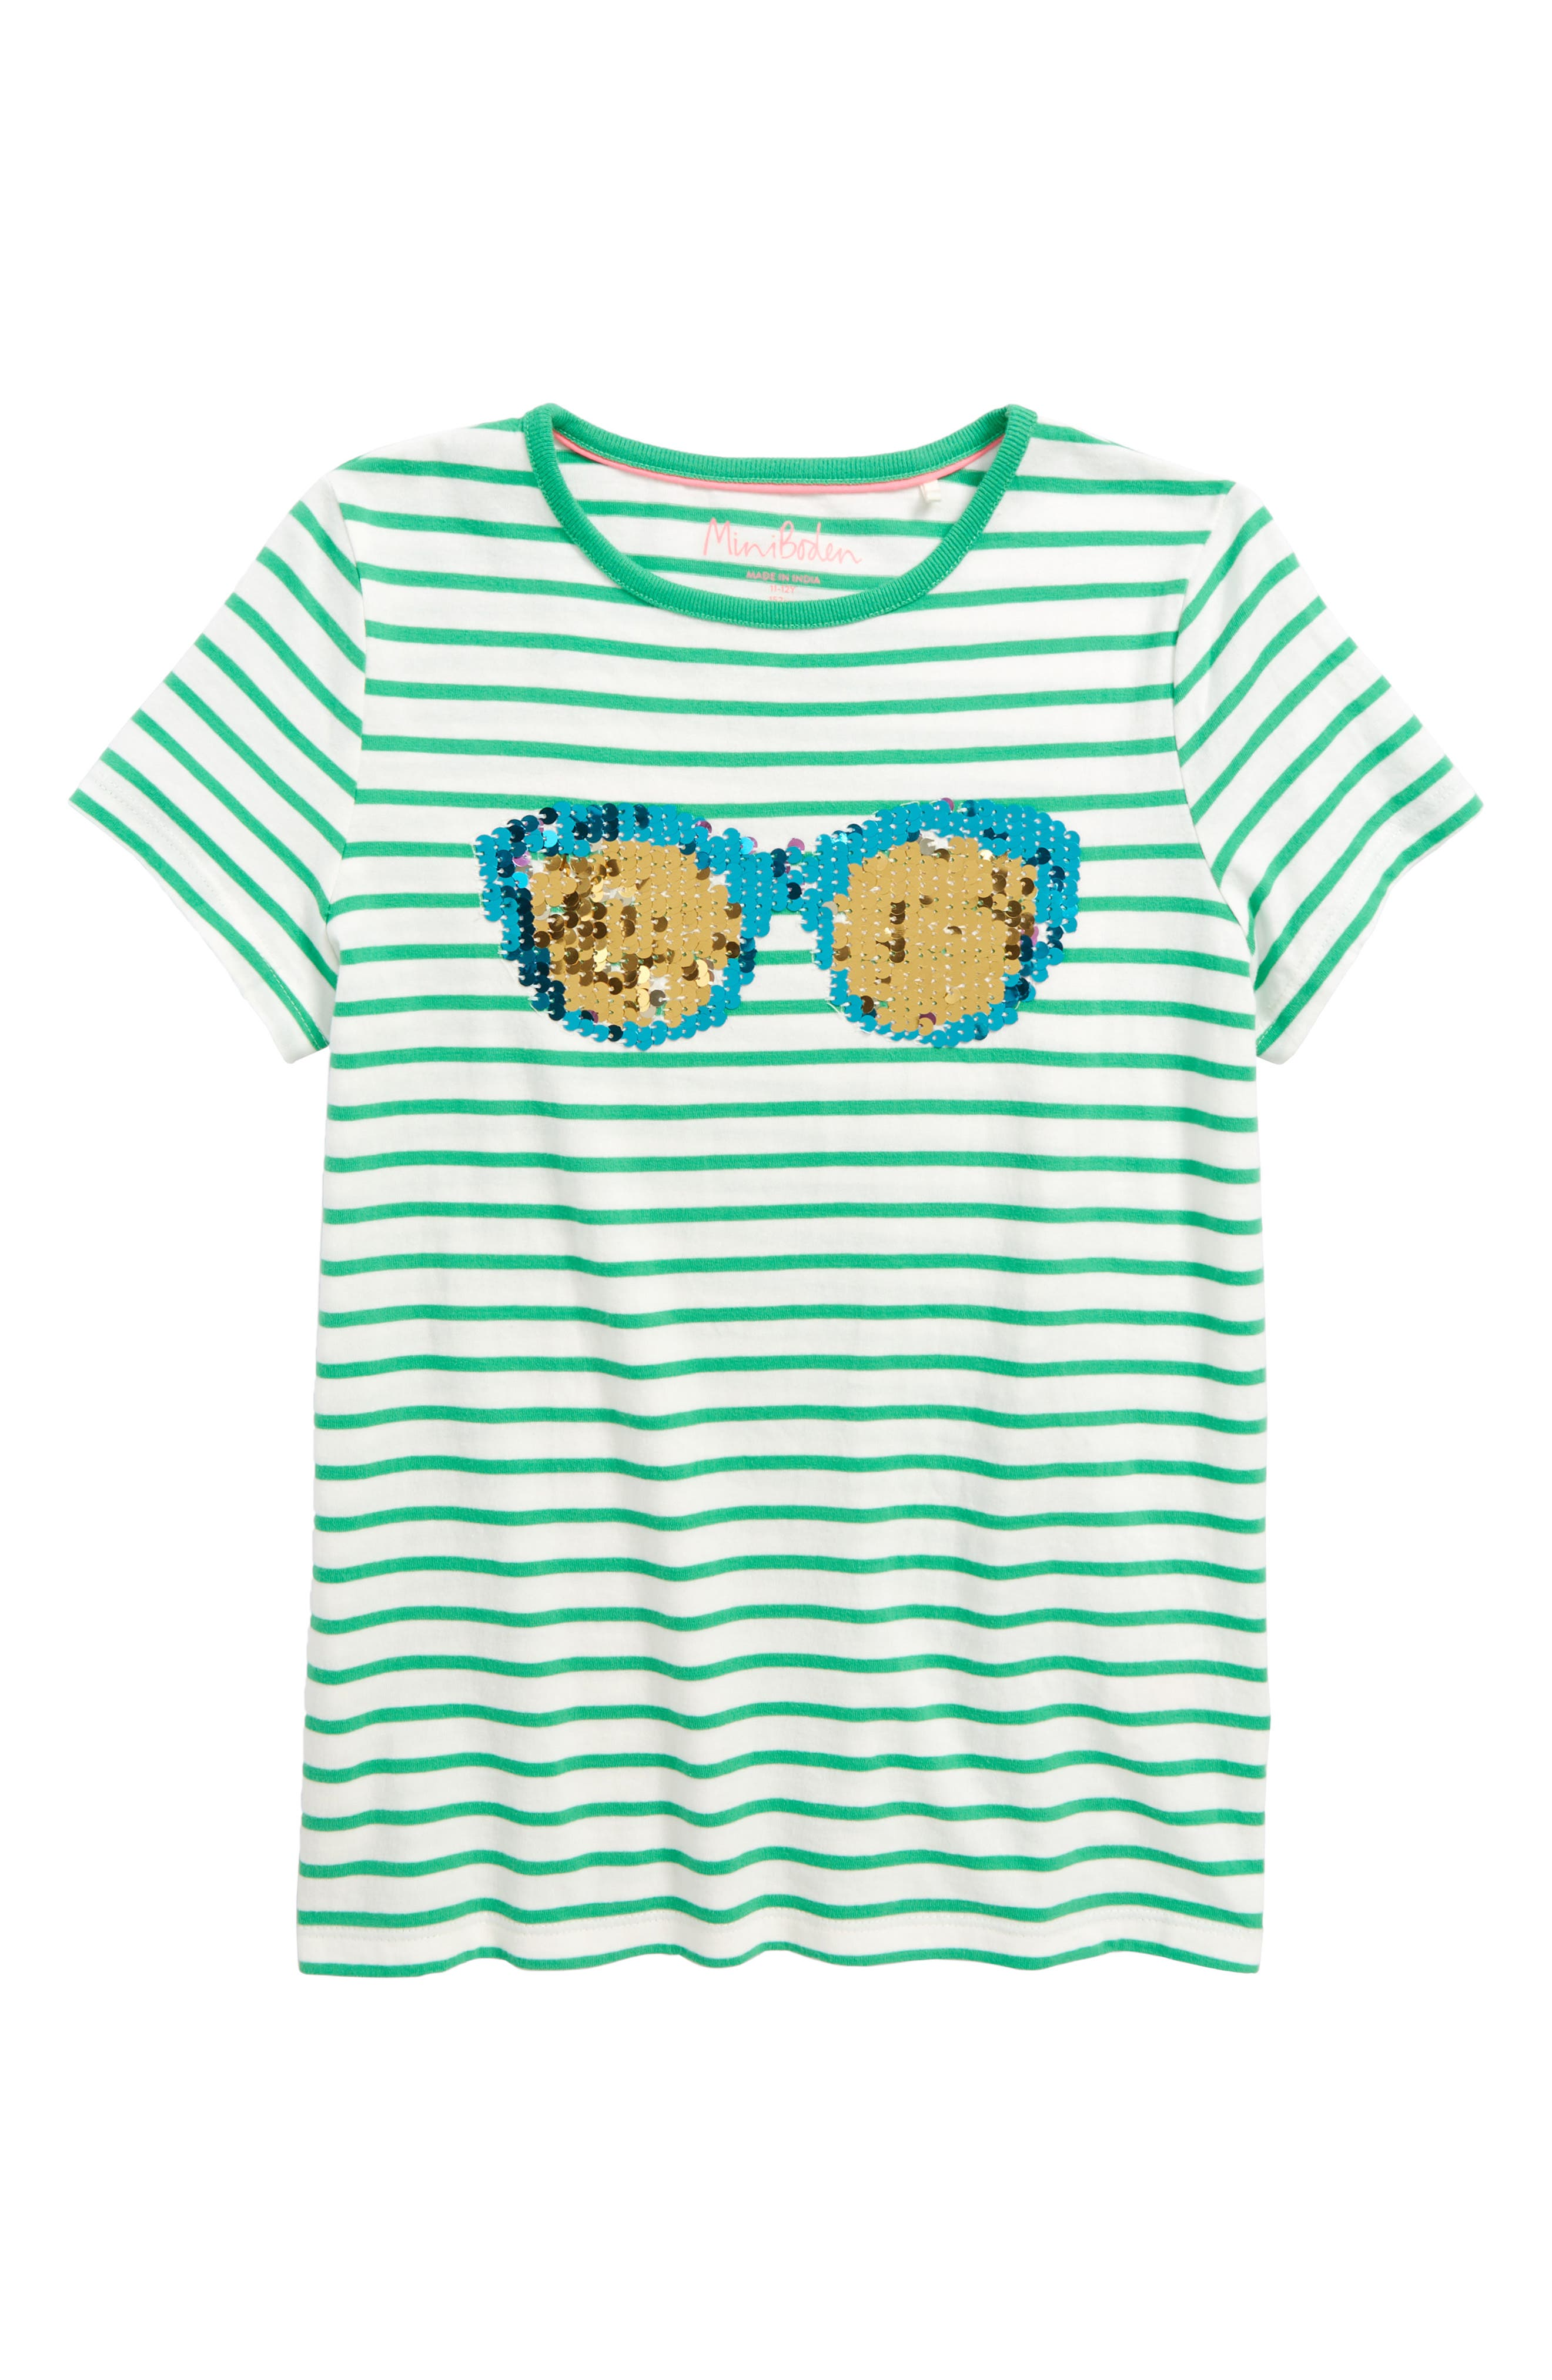 Sunny Sequin Tee,                             Main thumbnail 1, color,                             Grnivory/ Peppermint Green